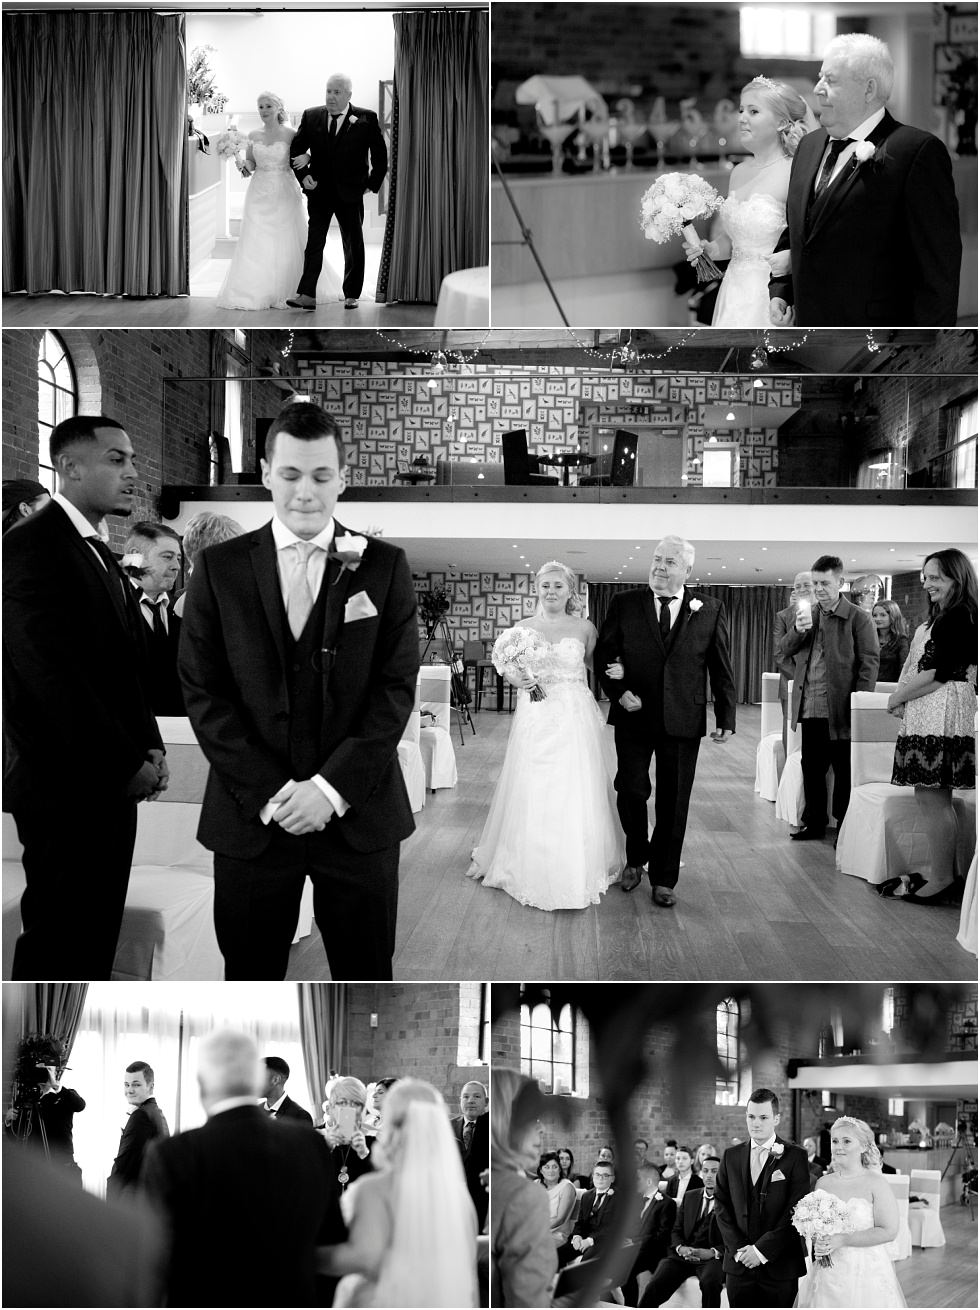 Wedding_at_The_Carriage_Hall_Plumtree_Nottingham_By_Nottingham_Wedding_Photographers_Matt_Selby_Photography_09